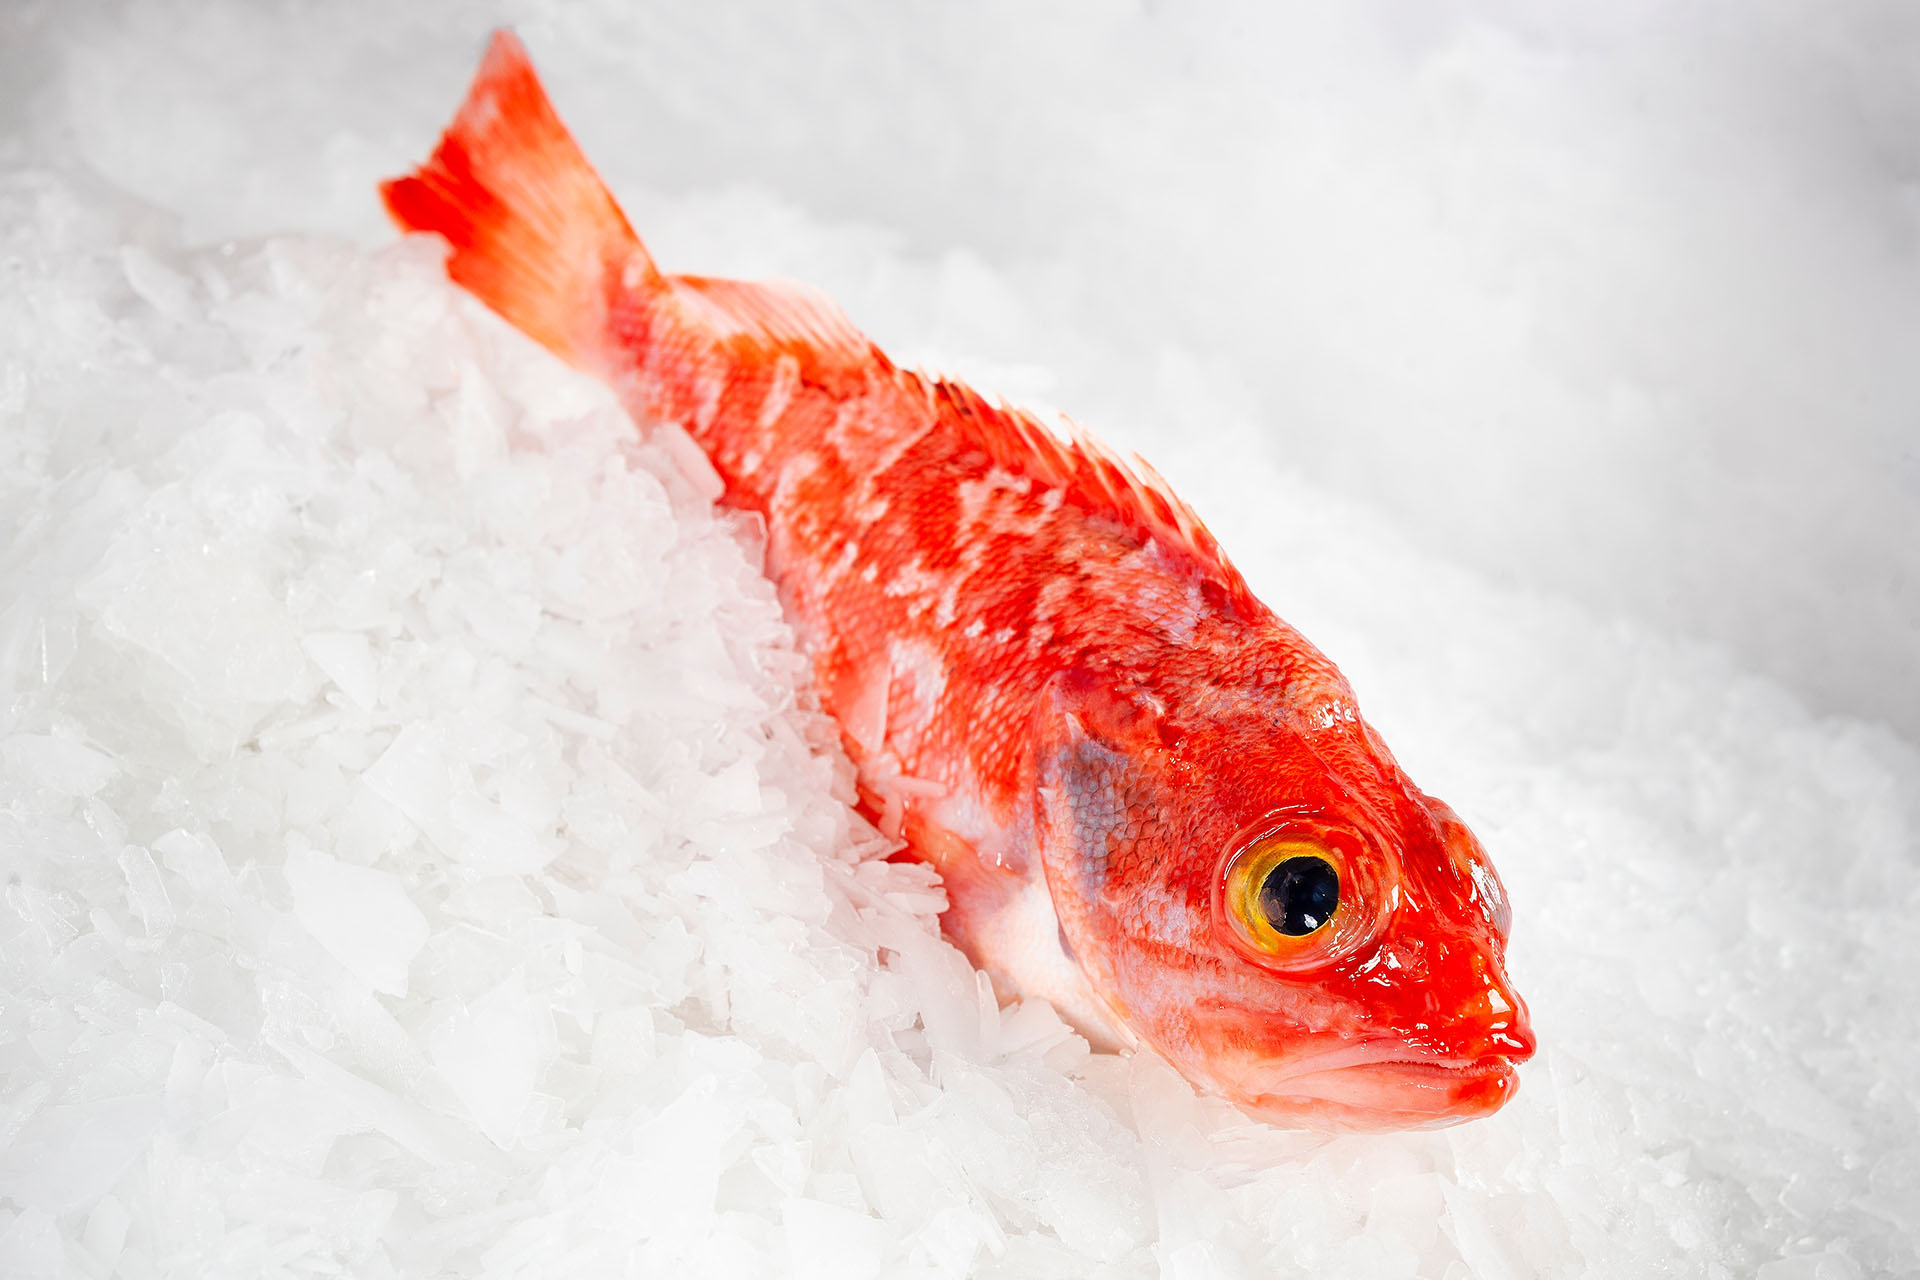 Frozen goatfish/redfish